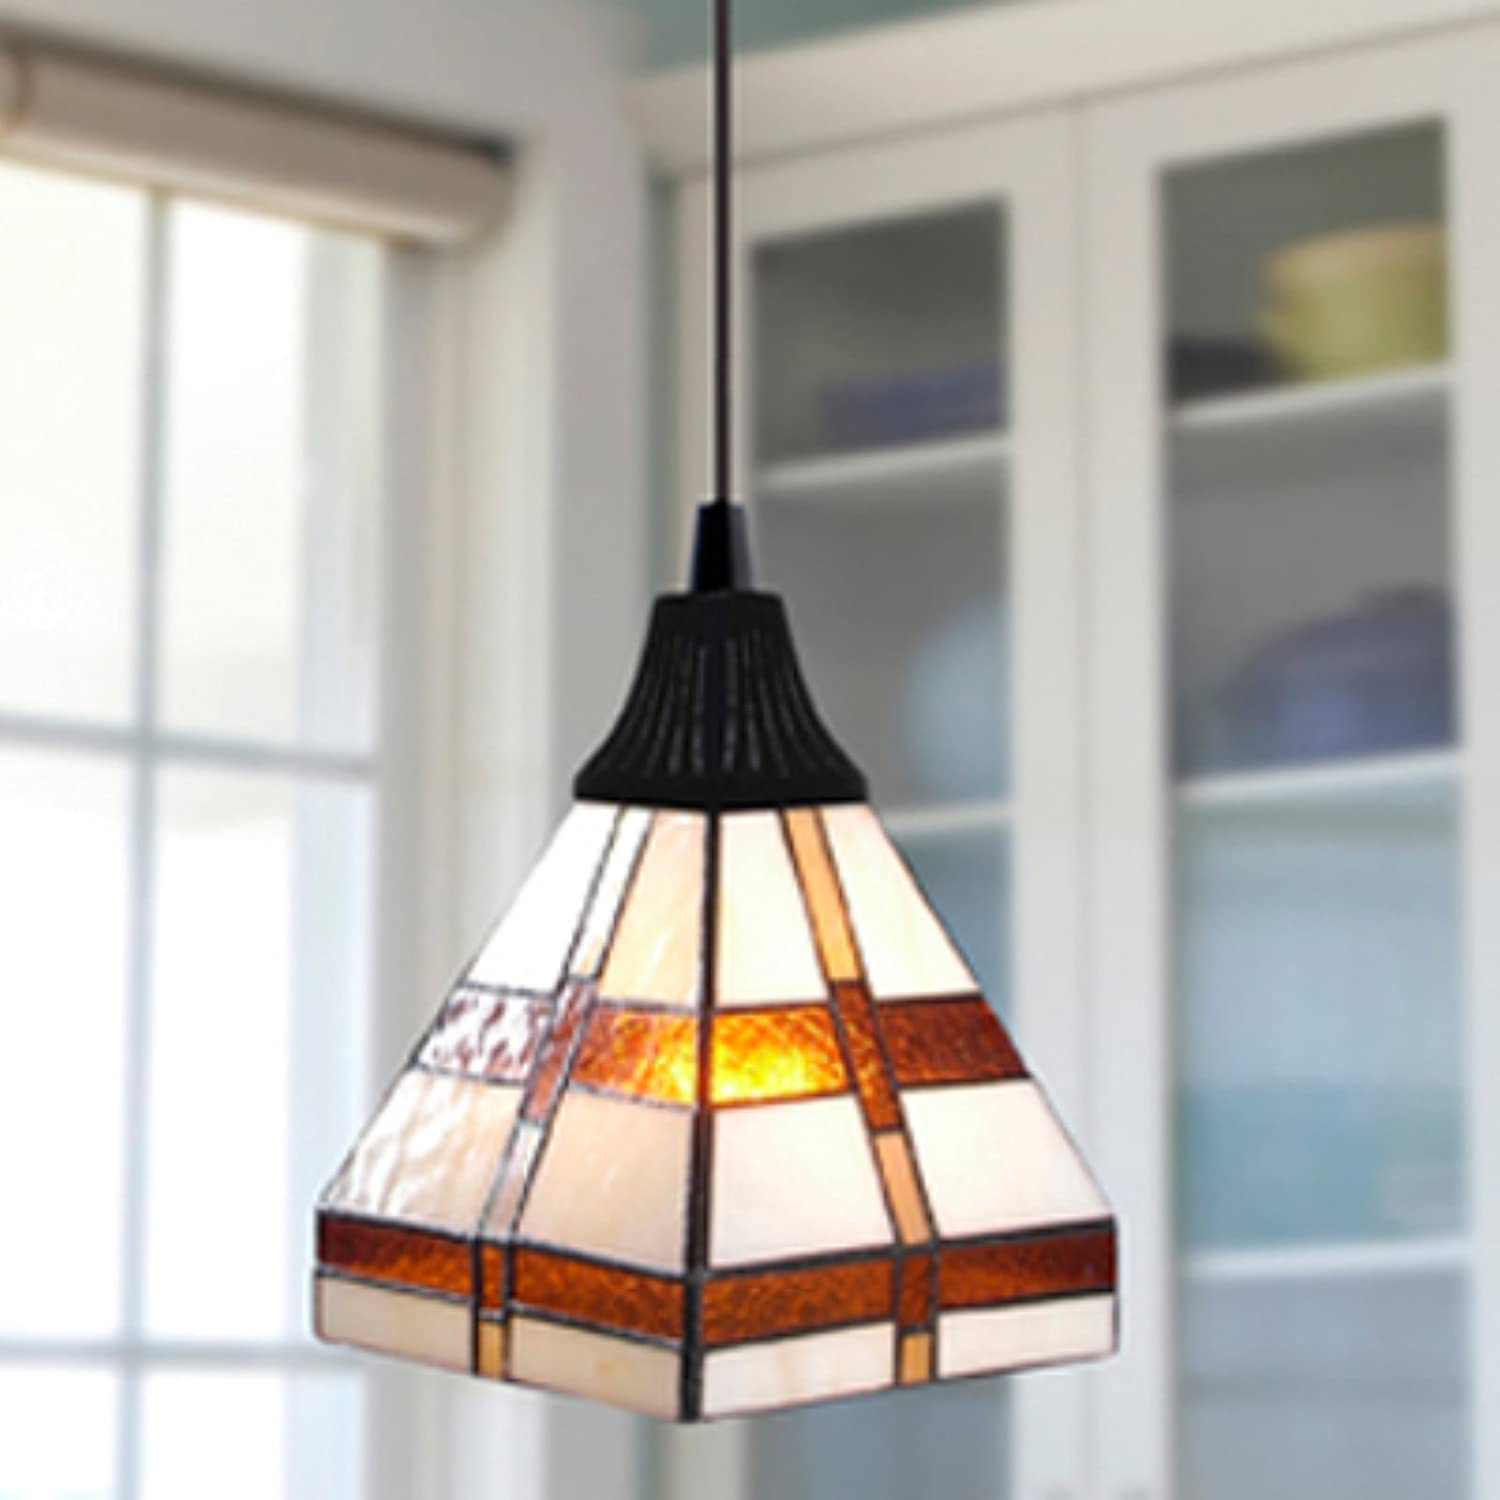 Instant Pendant Light with Screw-in Adapter